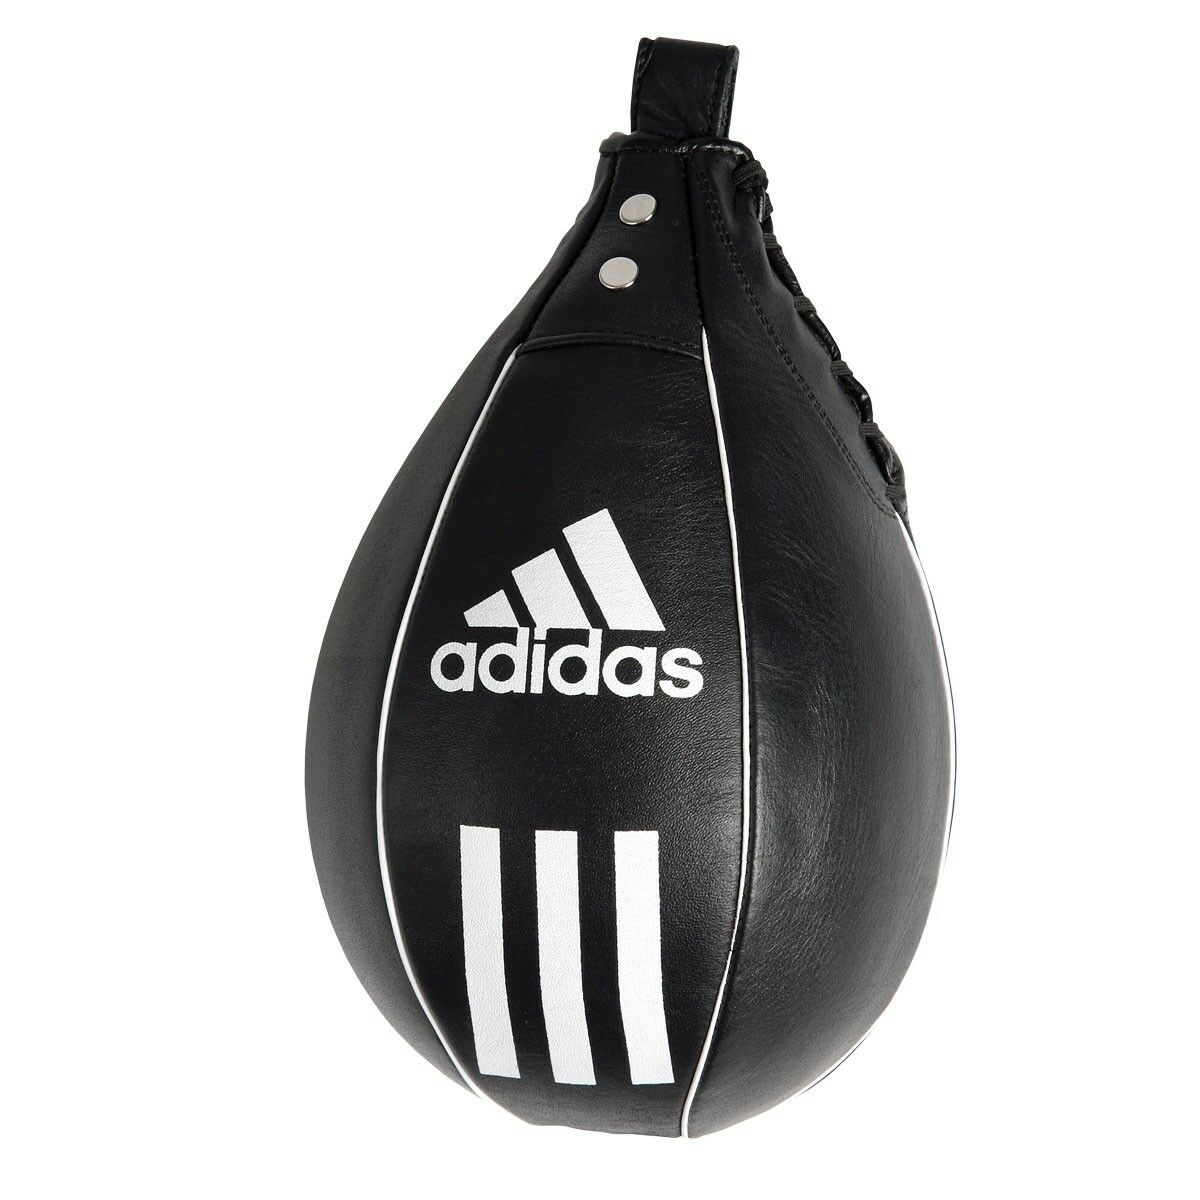 Adidas Speed Ball Striking Ball Leather Boxing Speed Bag